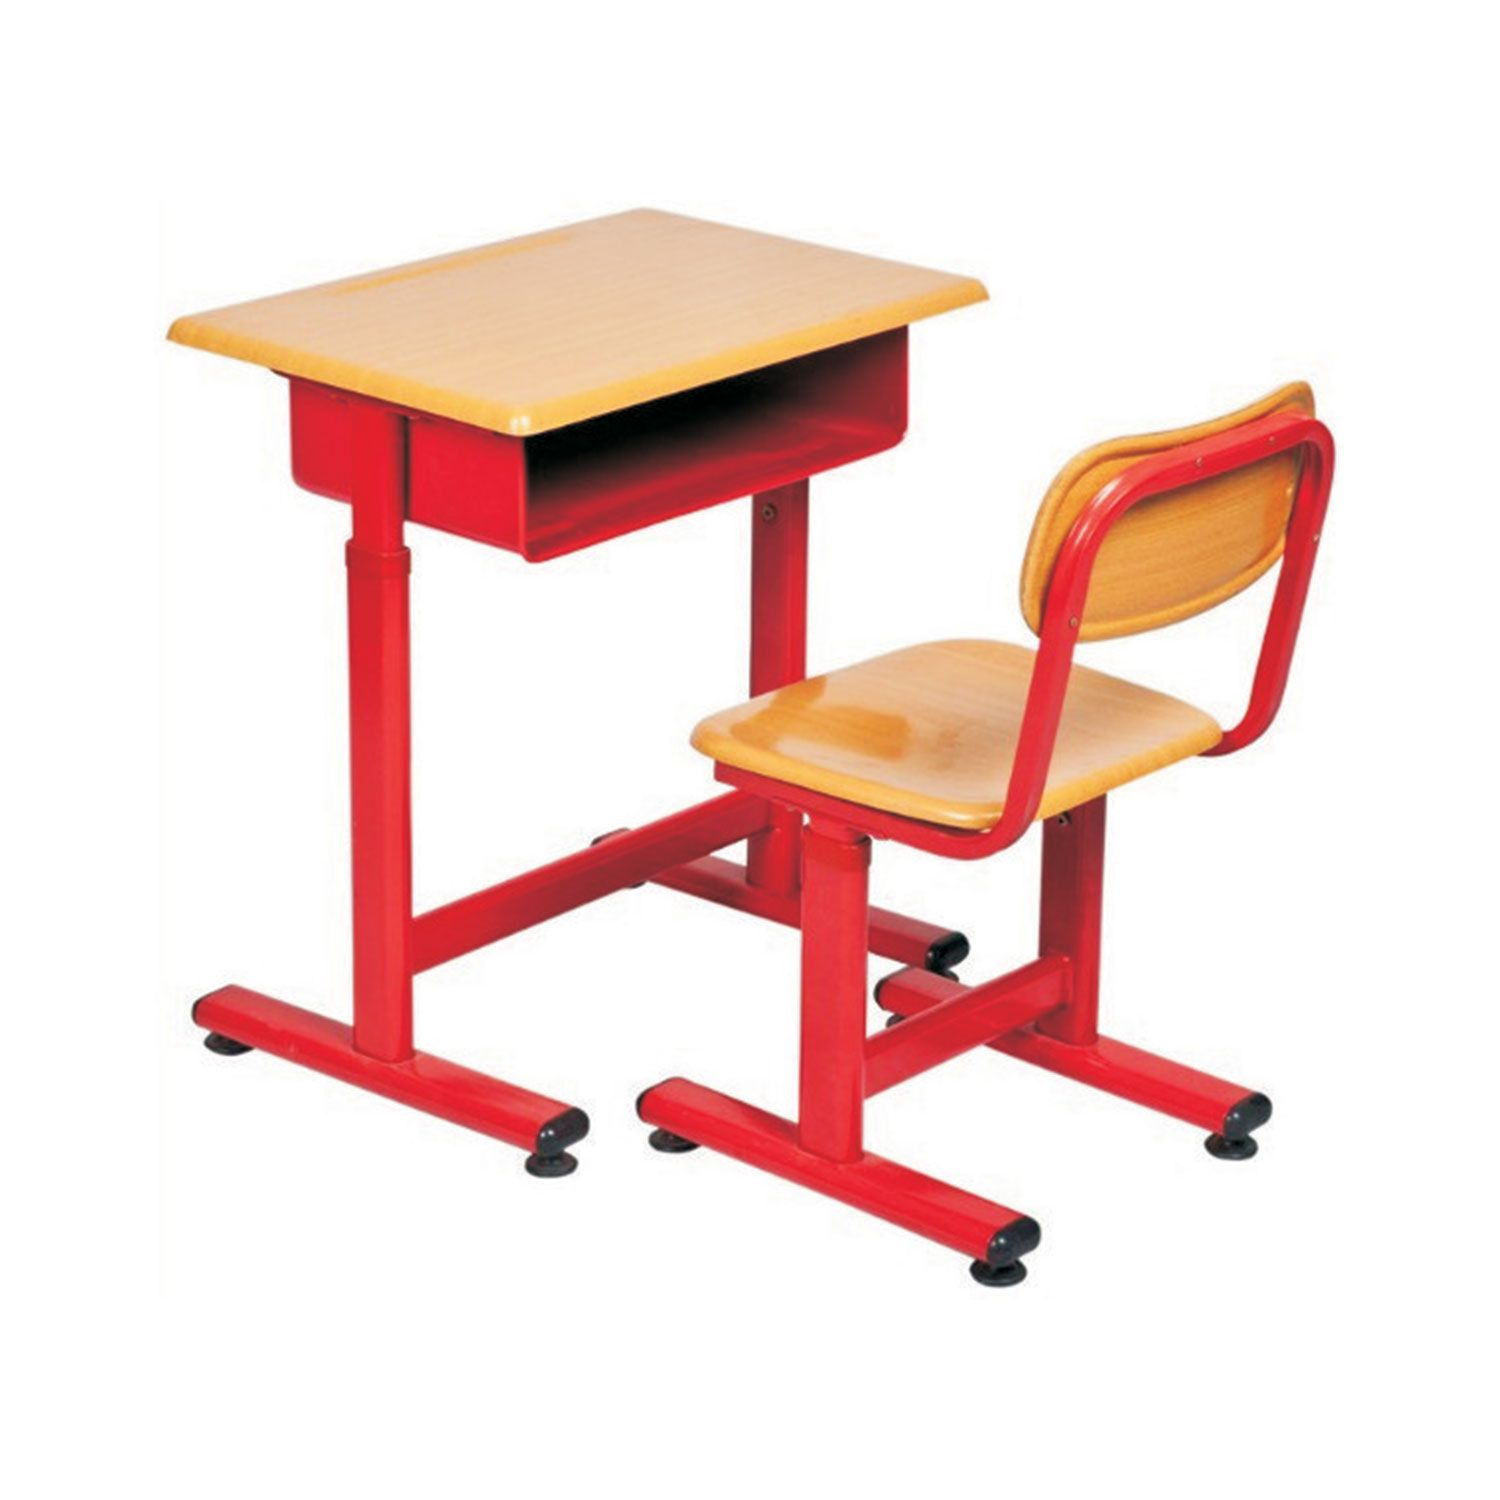 36++ Foldable study table for kids ideas in 2021